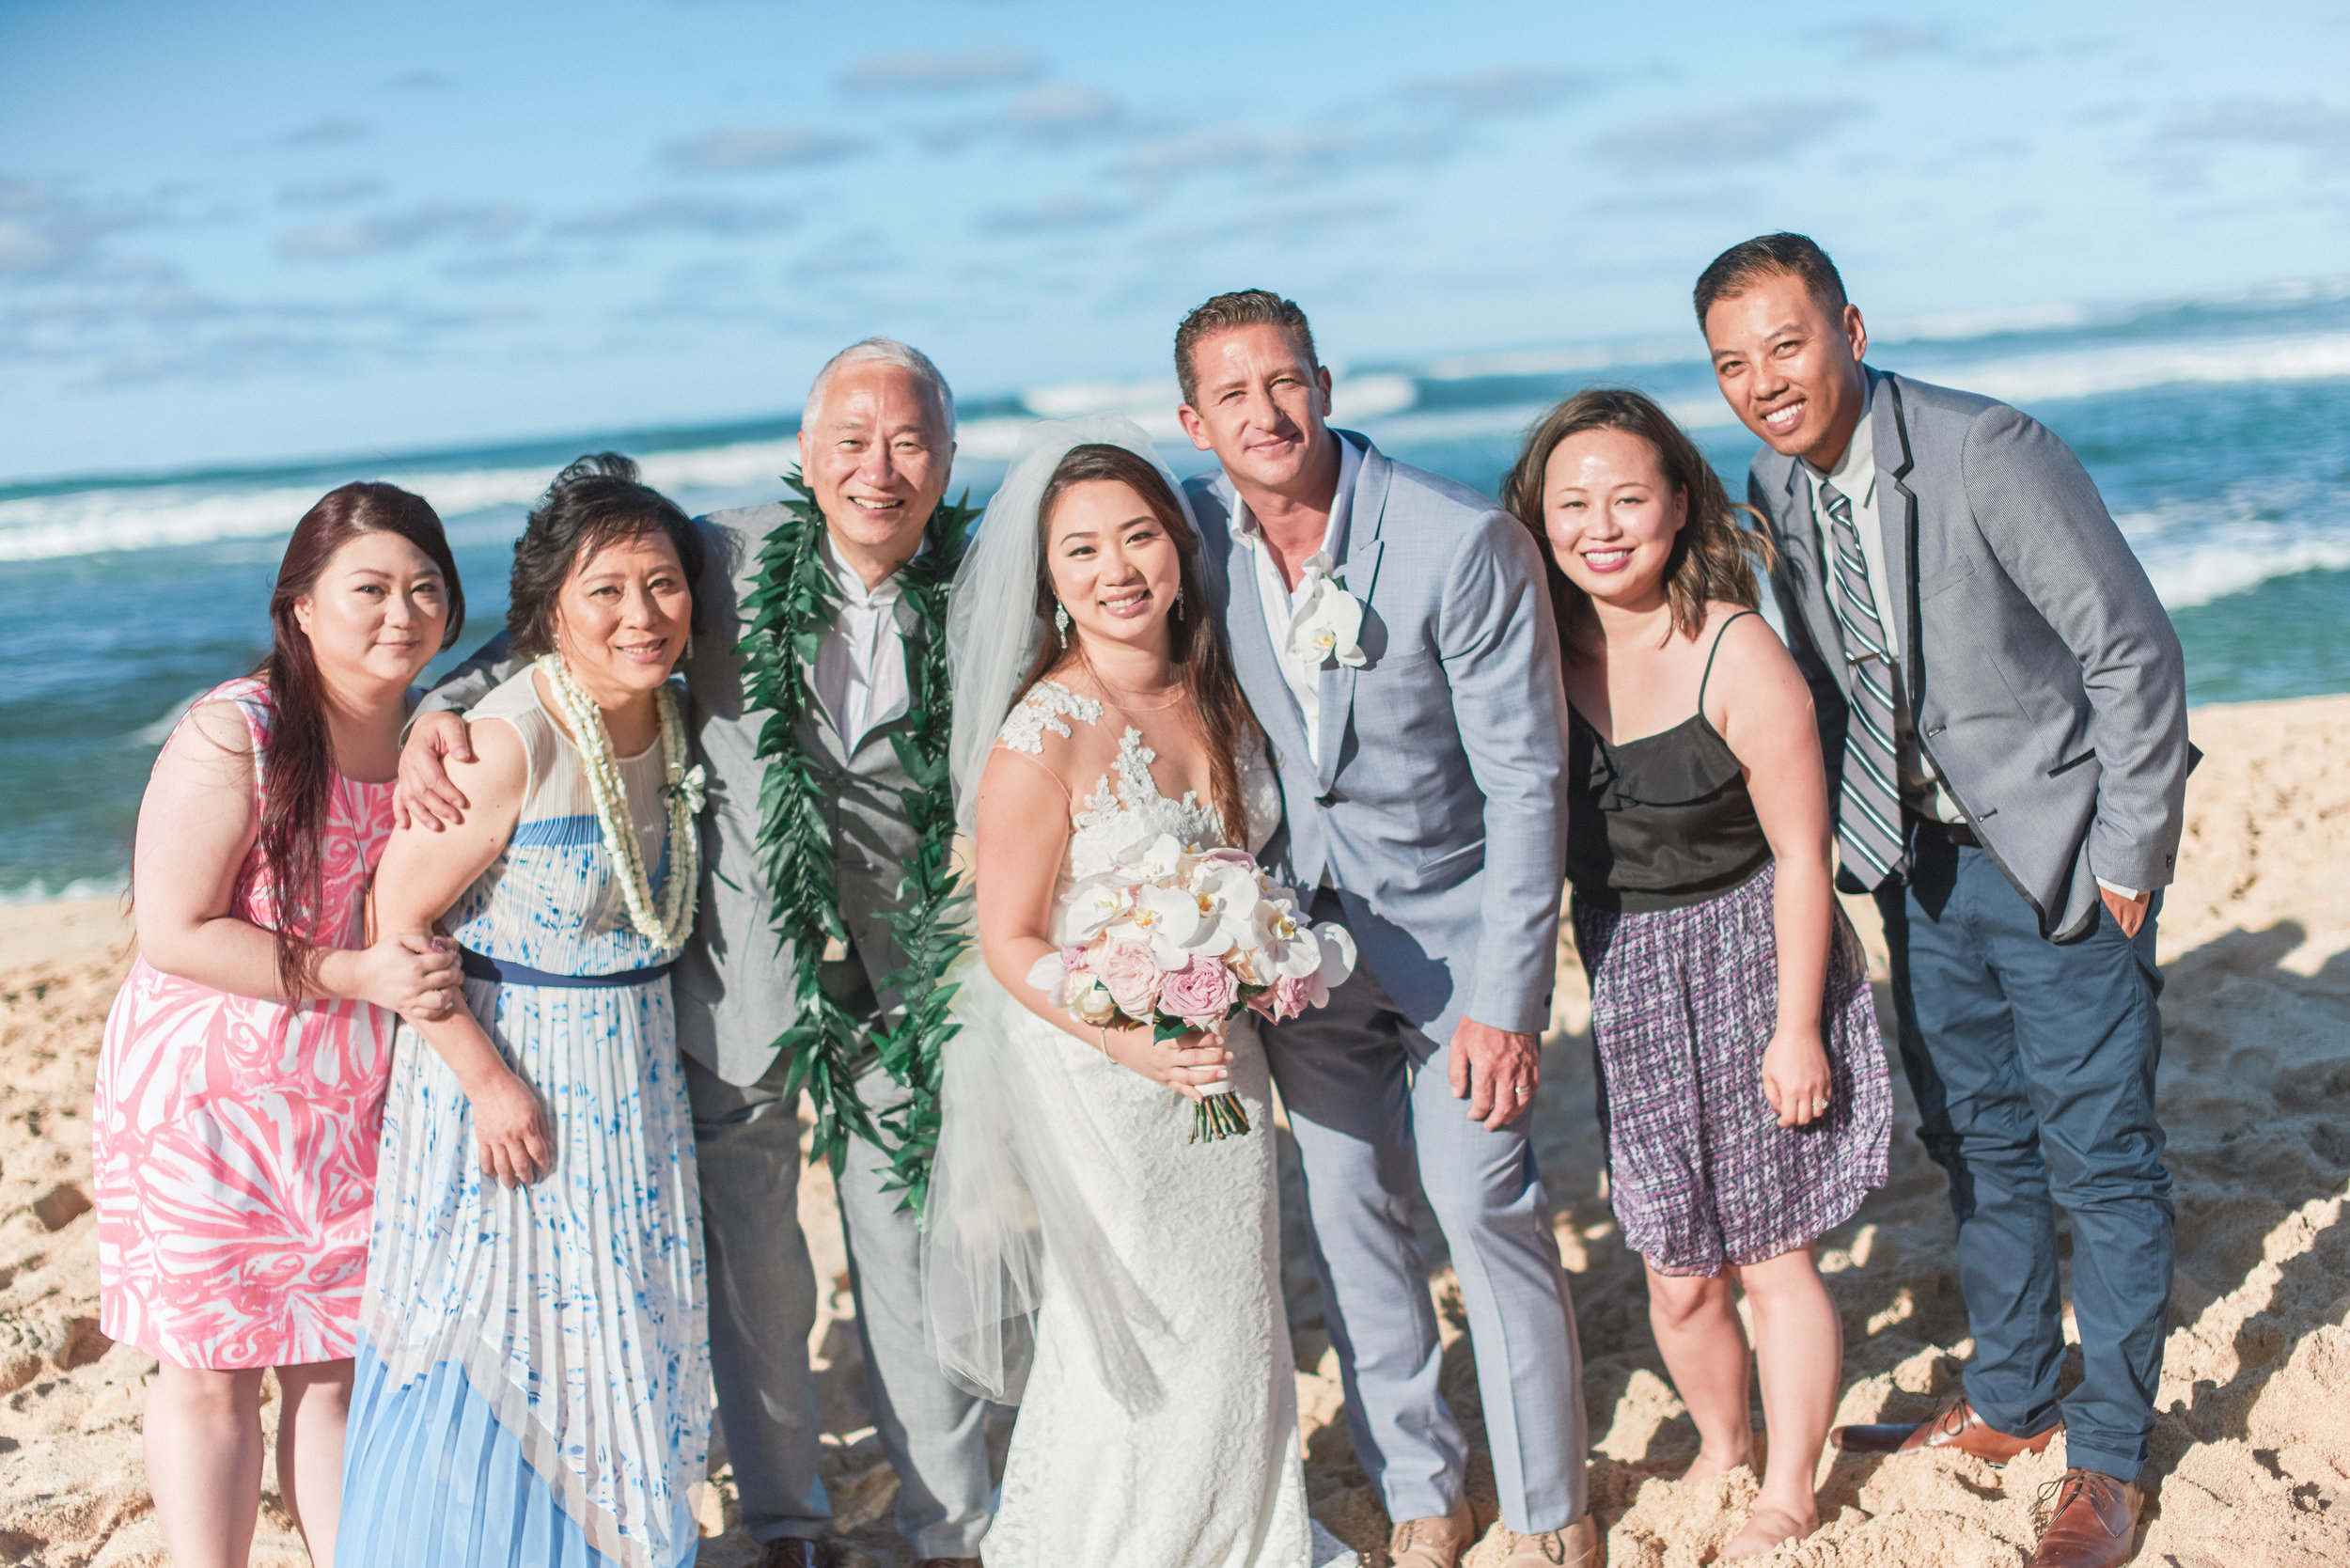 turtle bay resort wedding north shore oahu stephen ludwig photography- terry and isabel (9).jpg